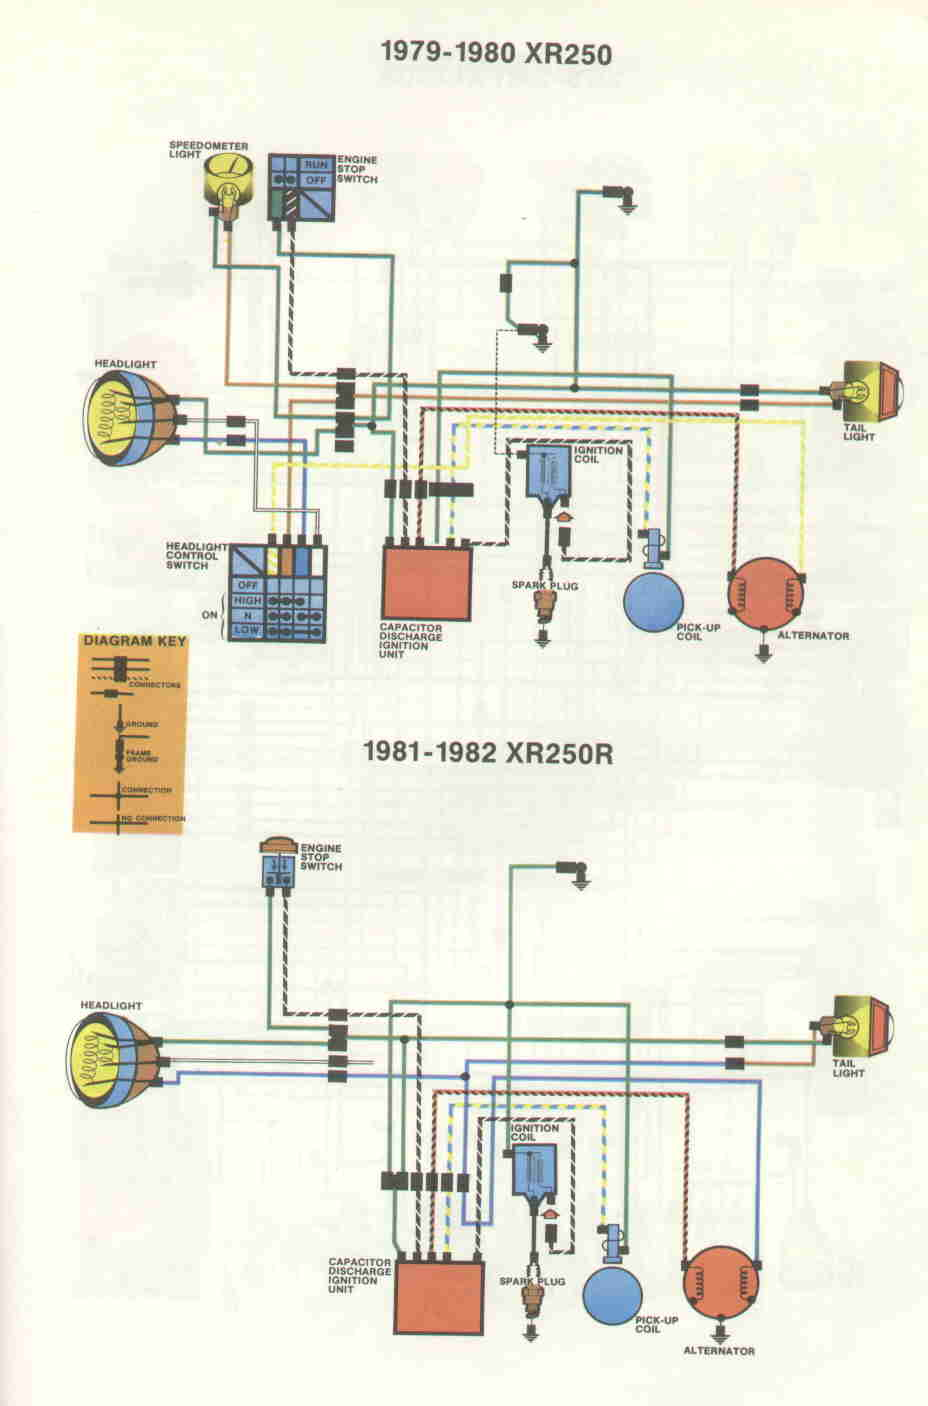 hight resolution of wiring diagrams rh bikewrecker tripod com 1978 honda xl 250 honda xr 250